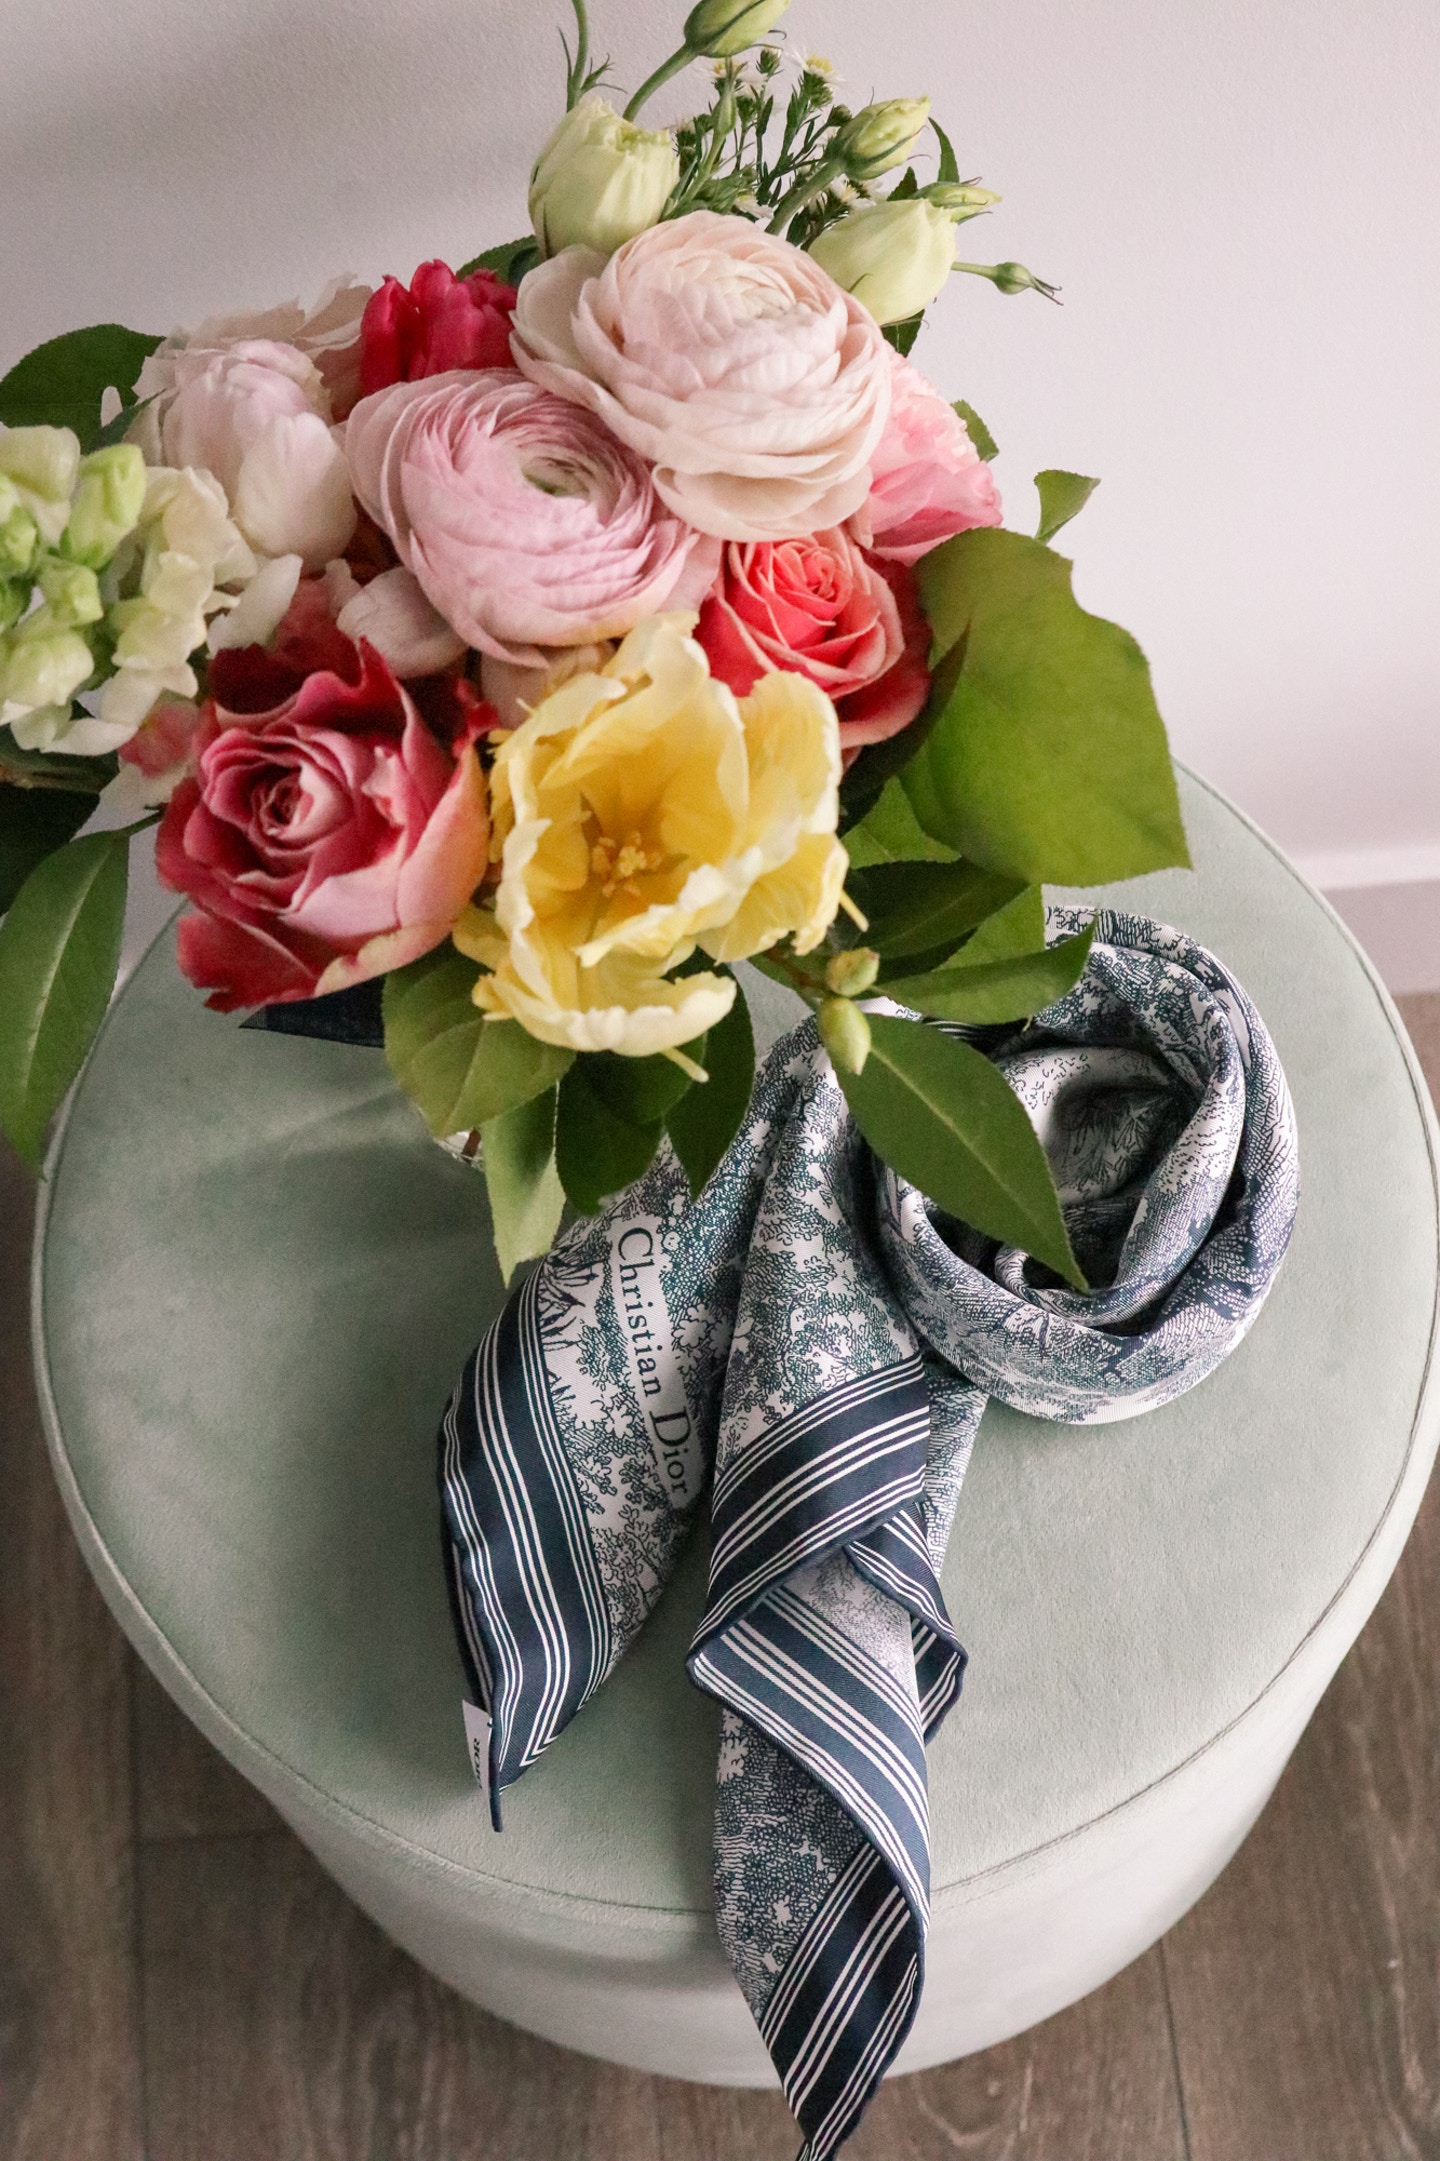 Christian Dior Toile de Jouy silk scarf: a perfect, timeless gift idea!